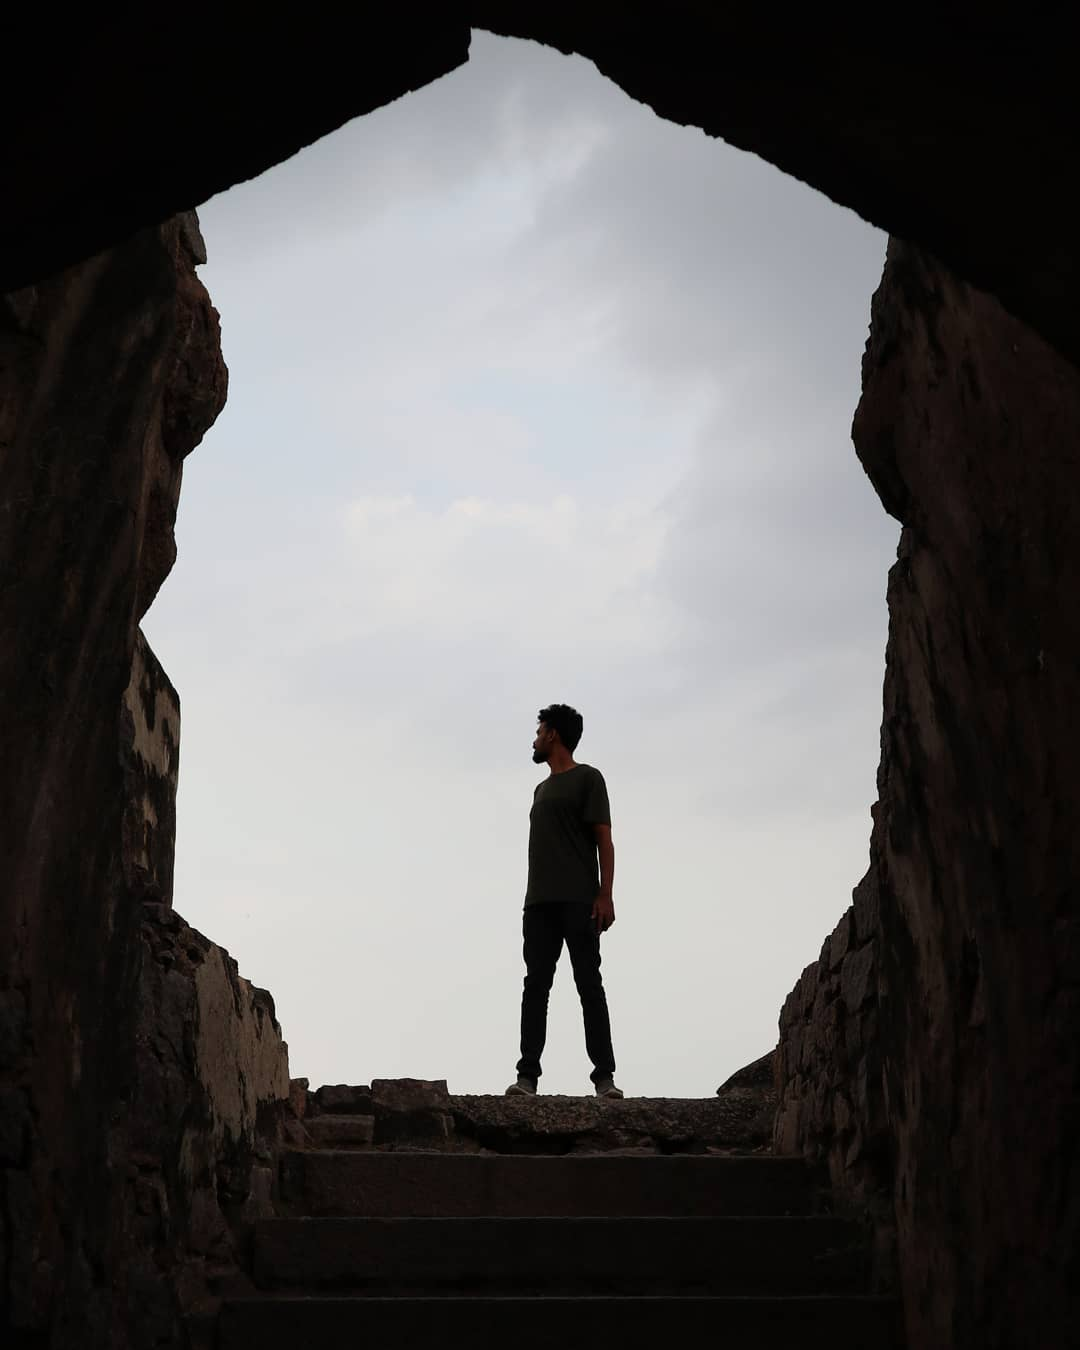 Man infront of cave